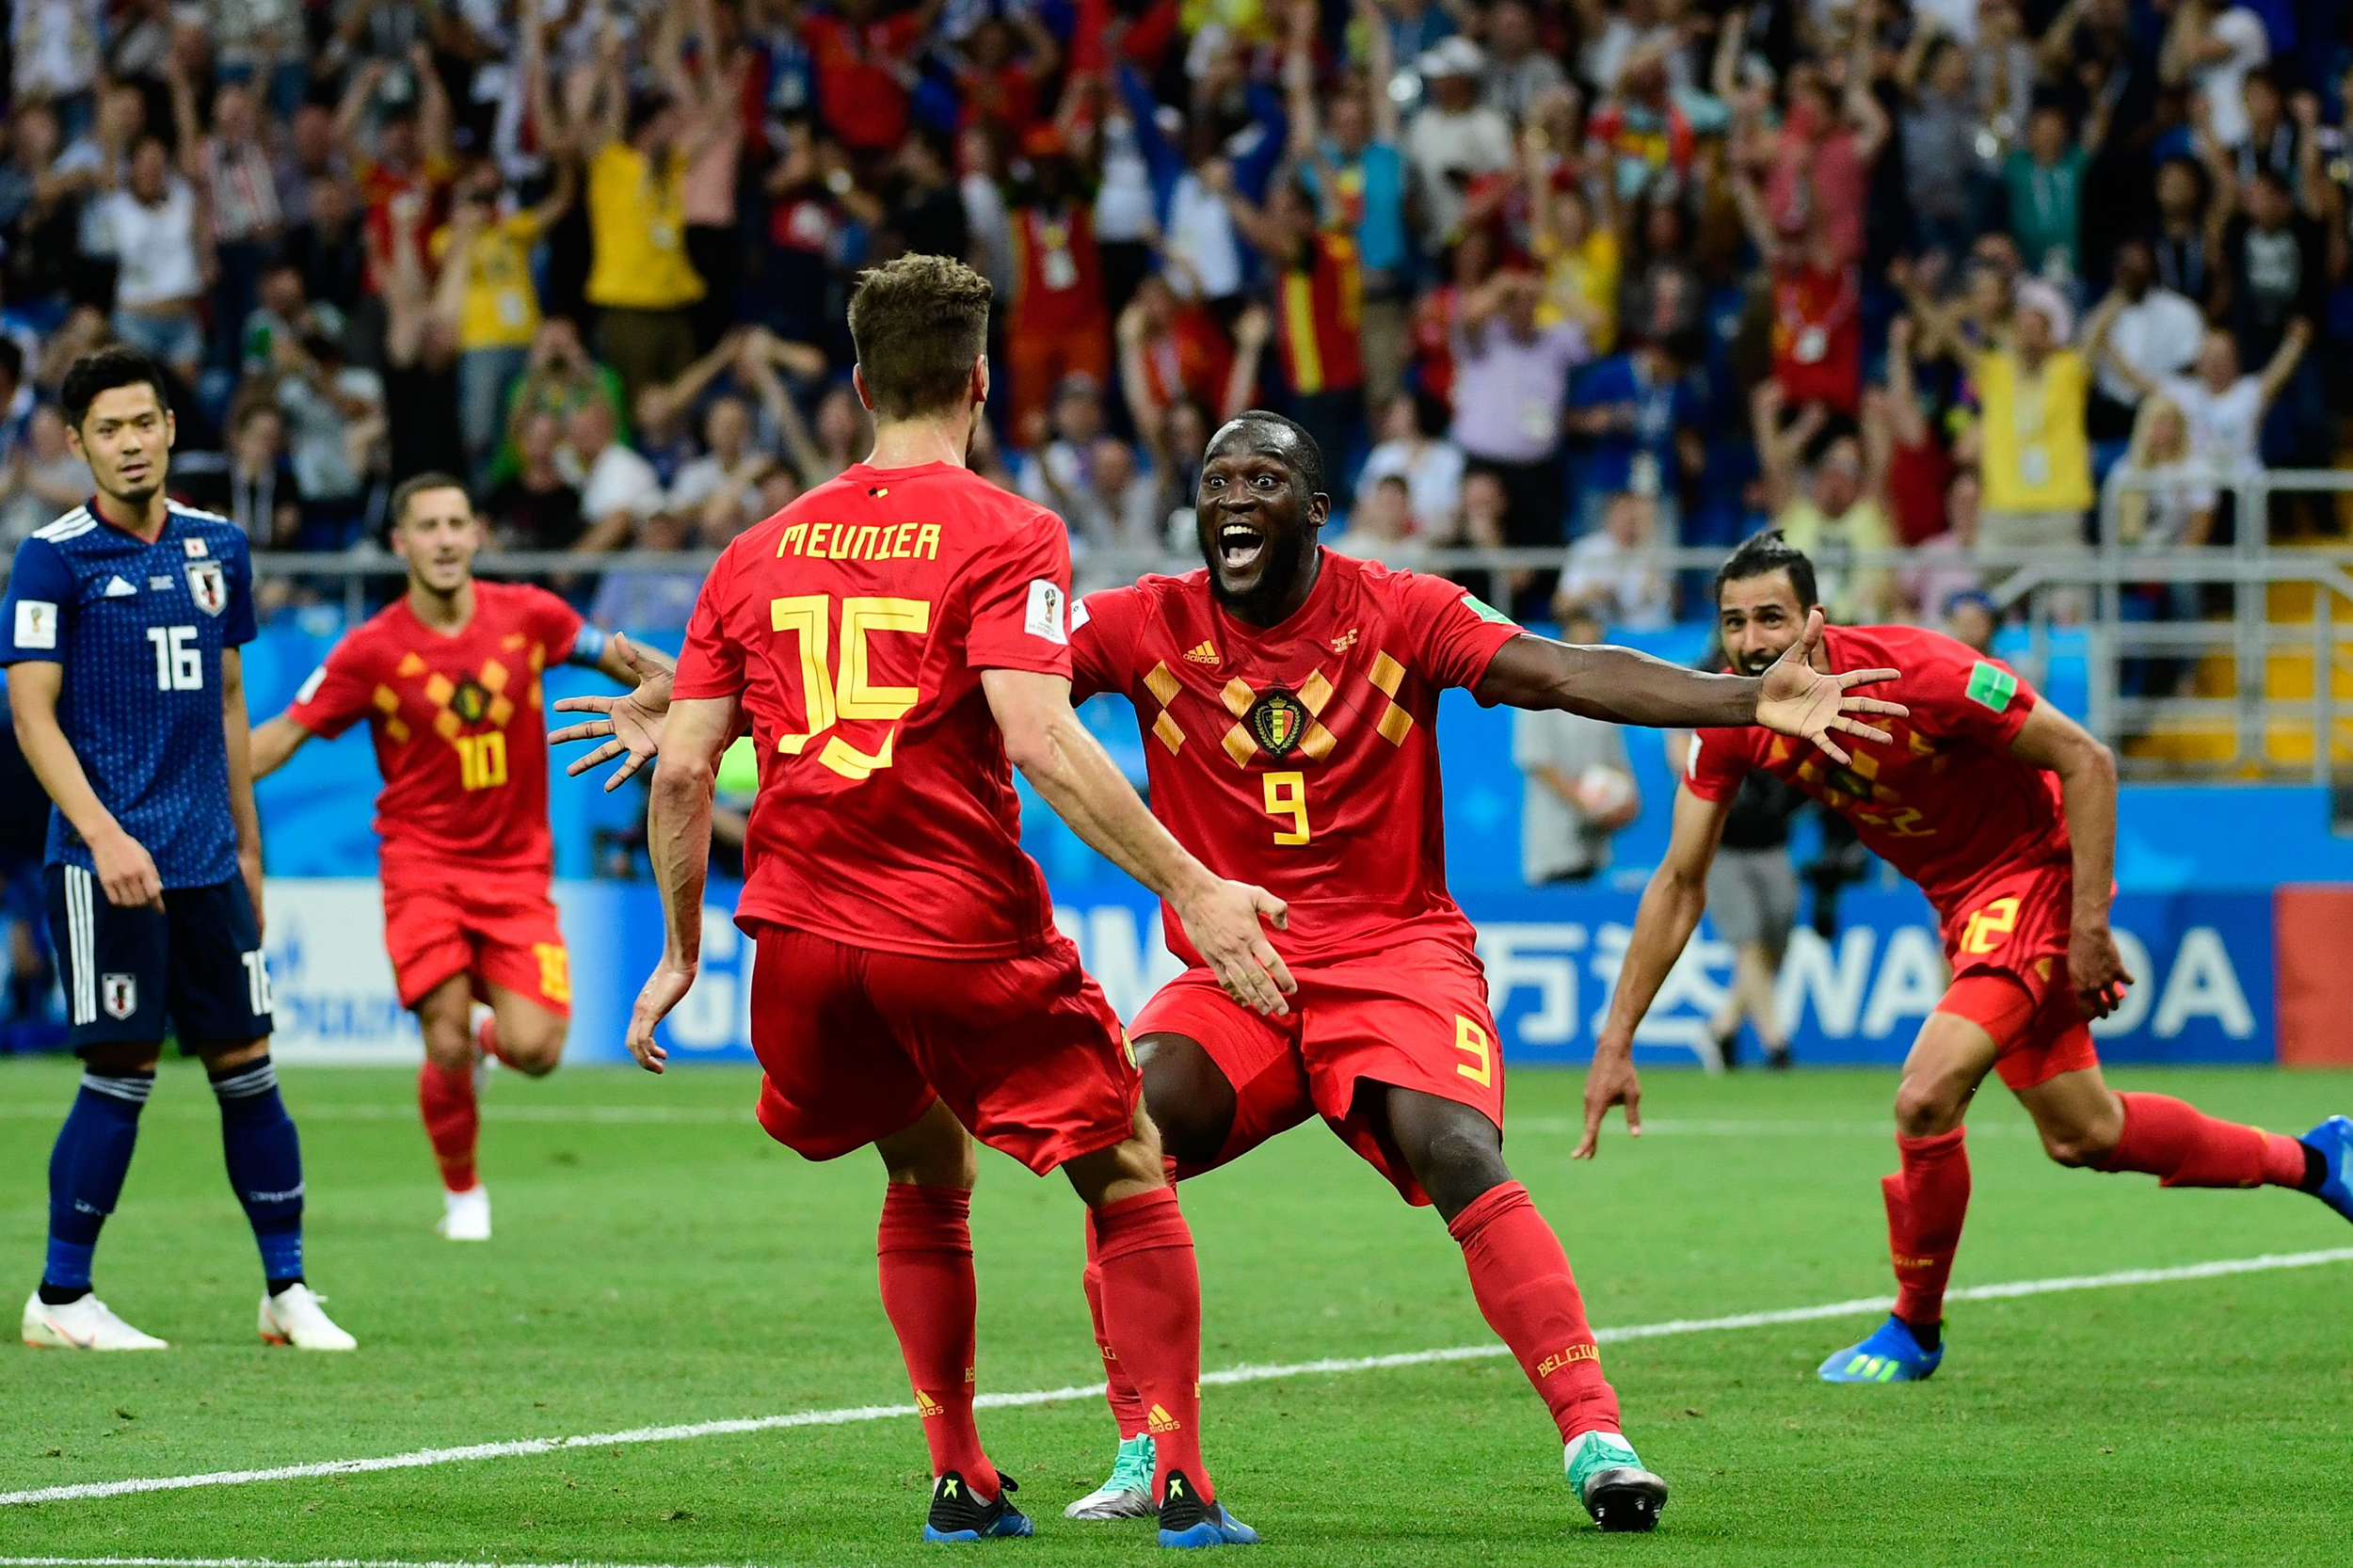 Comeback-complete:-Belgium-stuns-Japan-in-the-final-minute,-winning-3-2